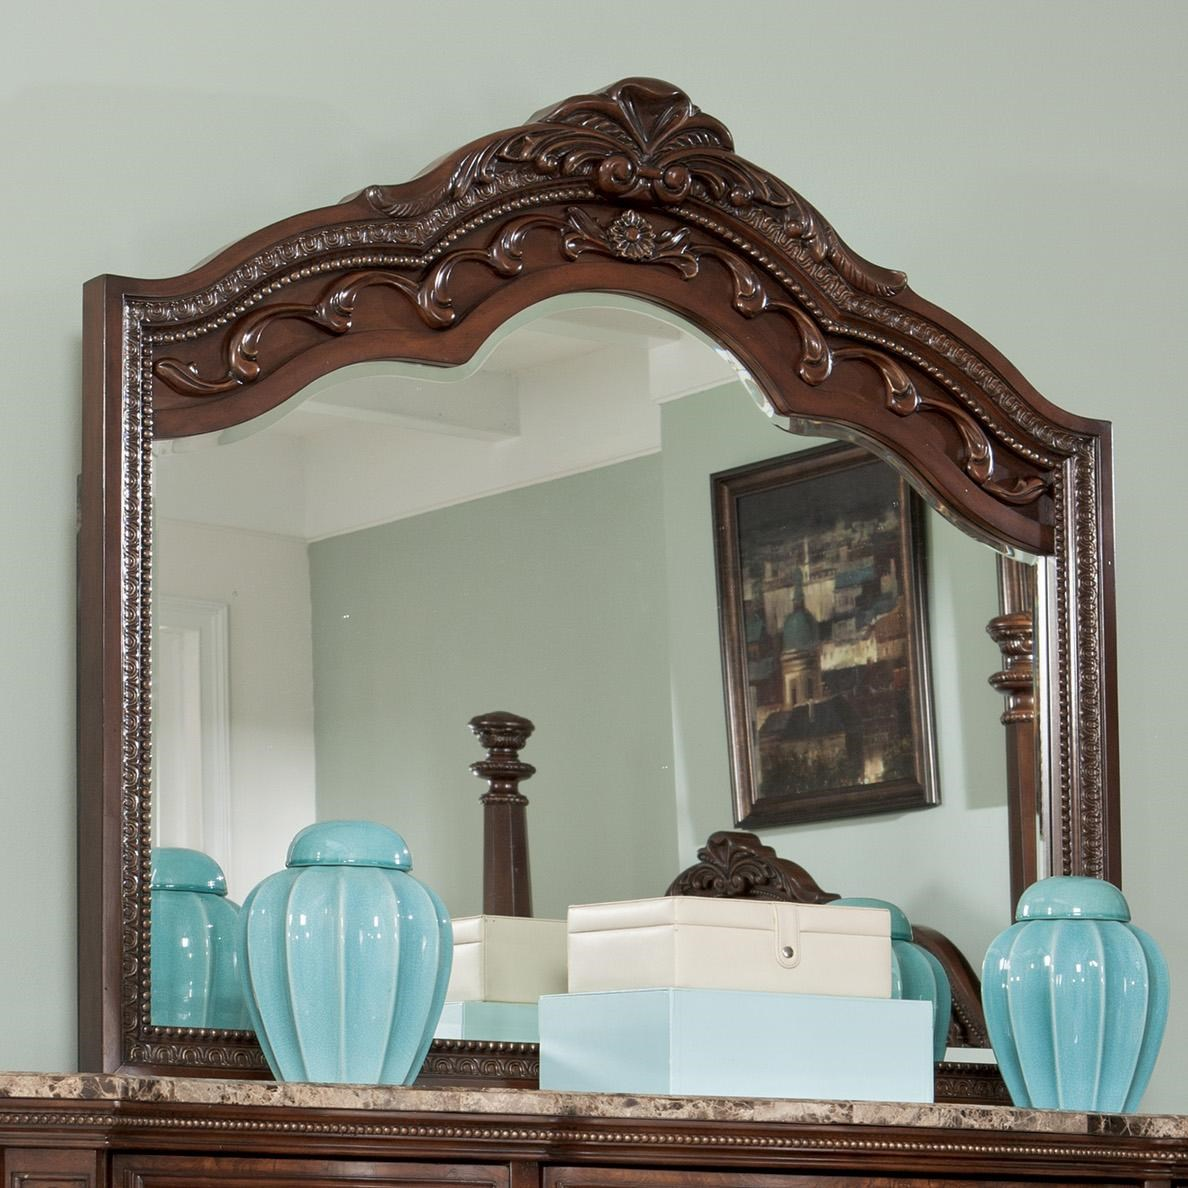 Millennium Ledelle Traditional Bedroom Mirror With Shaped Frame   Del Sol  Furniture   Dresser Mirrors